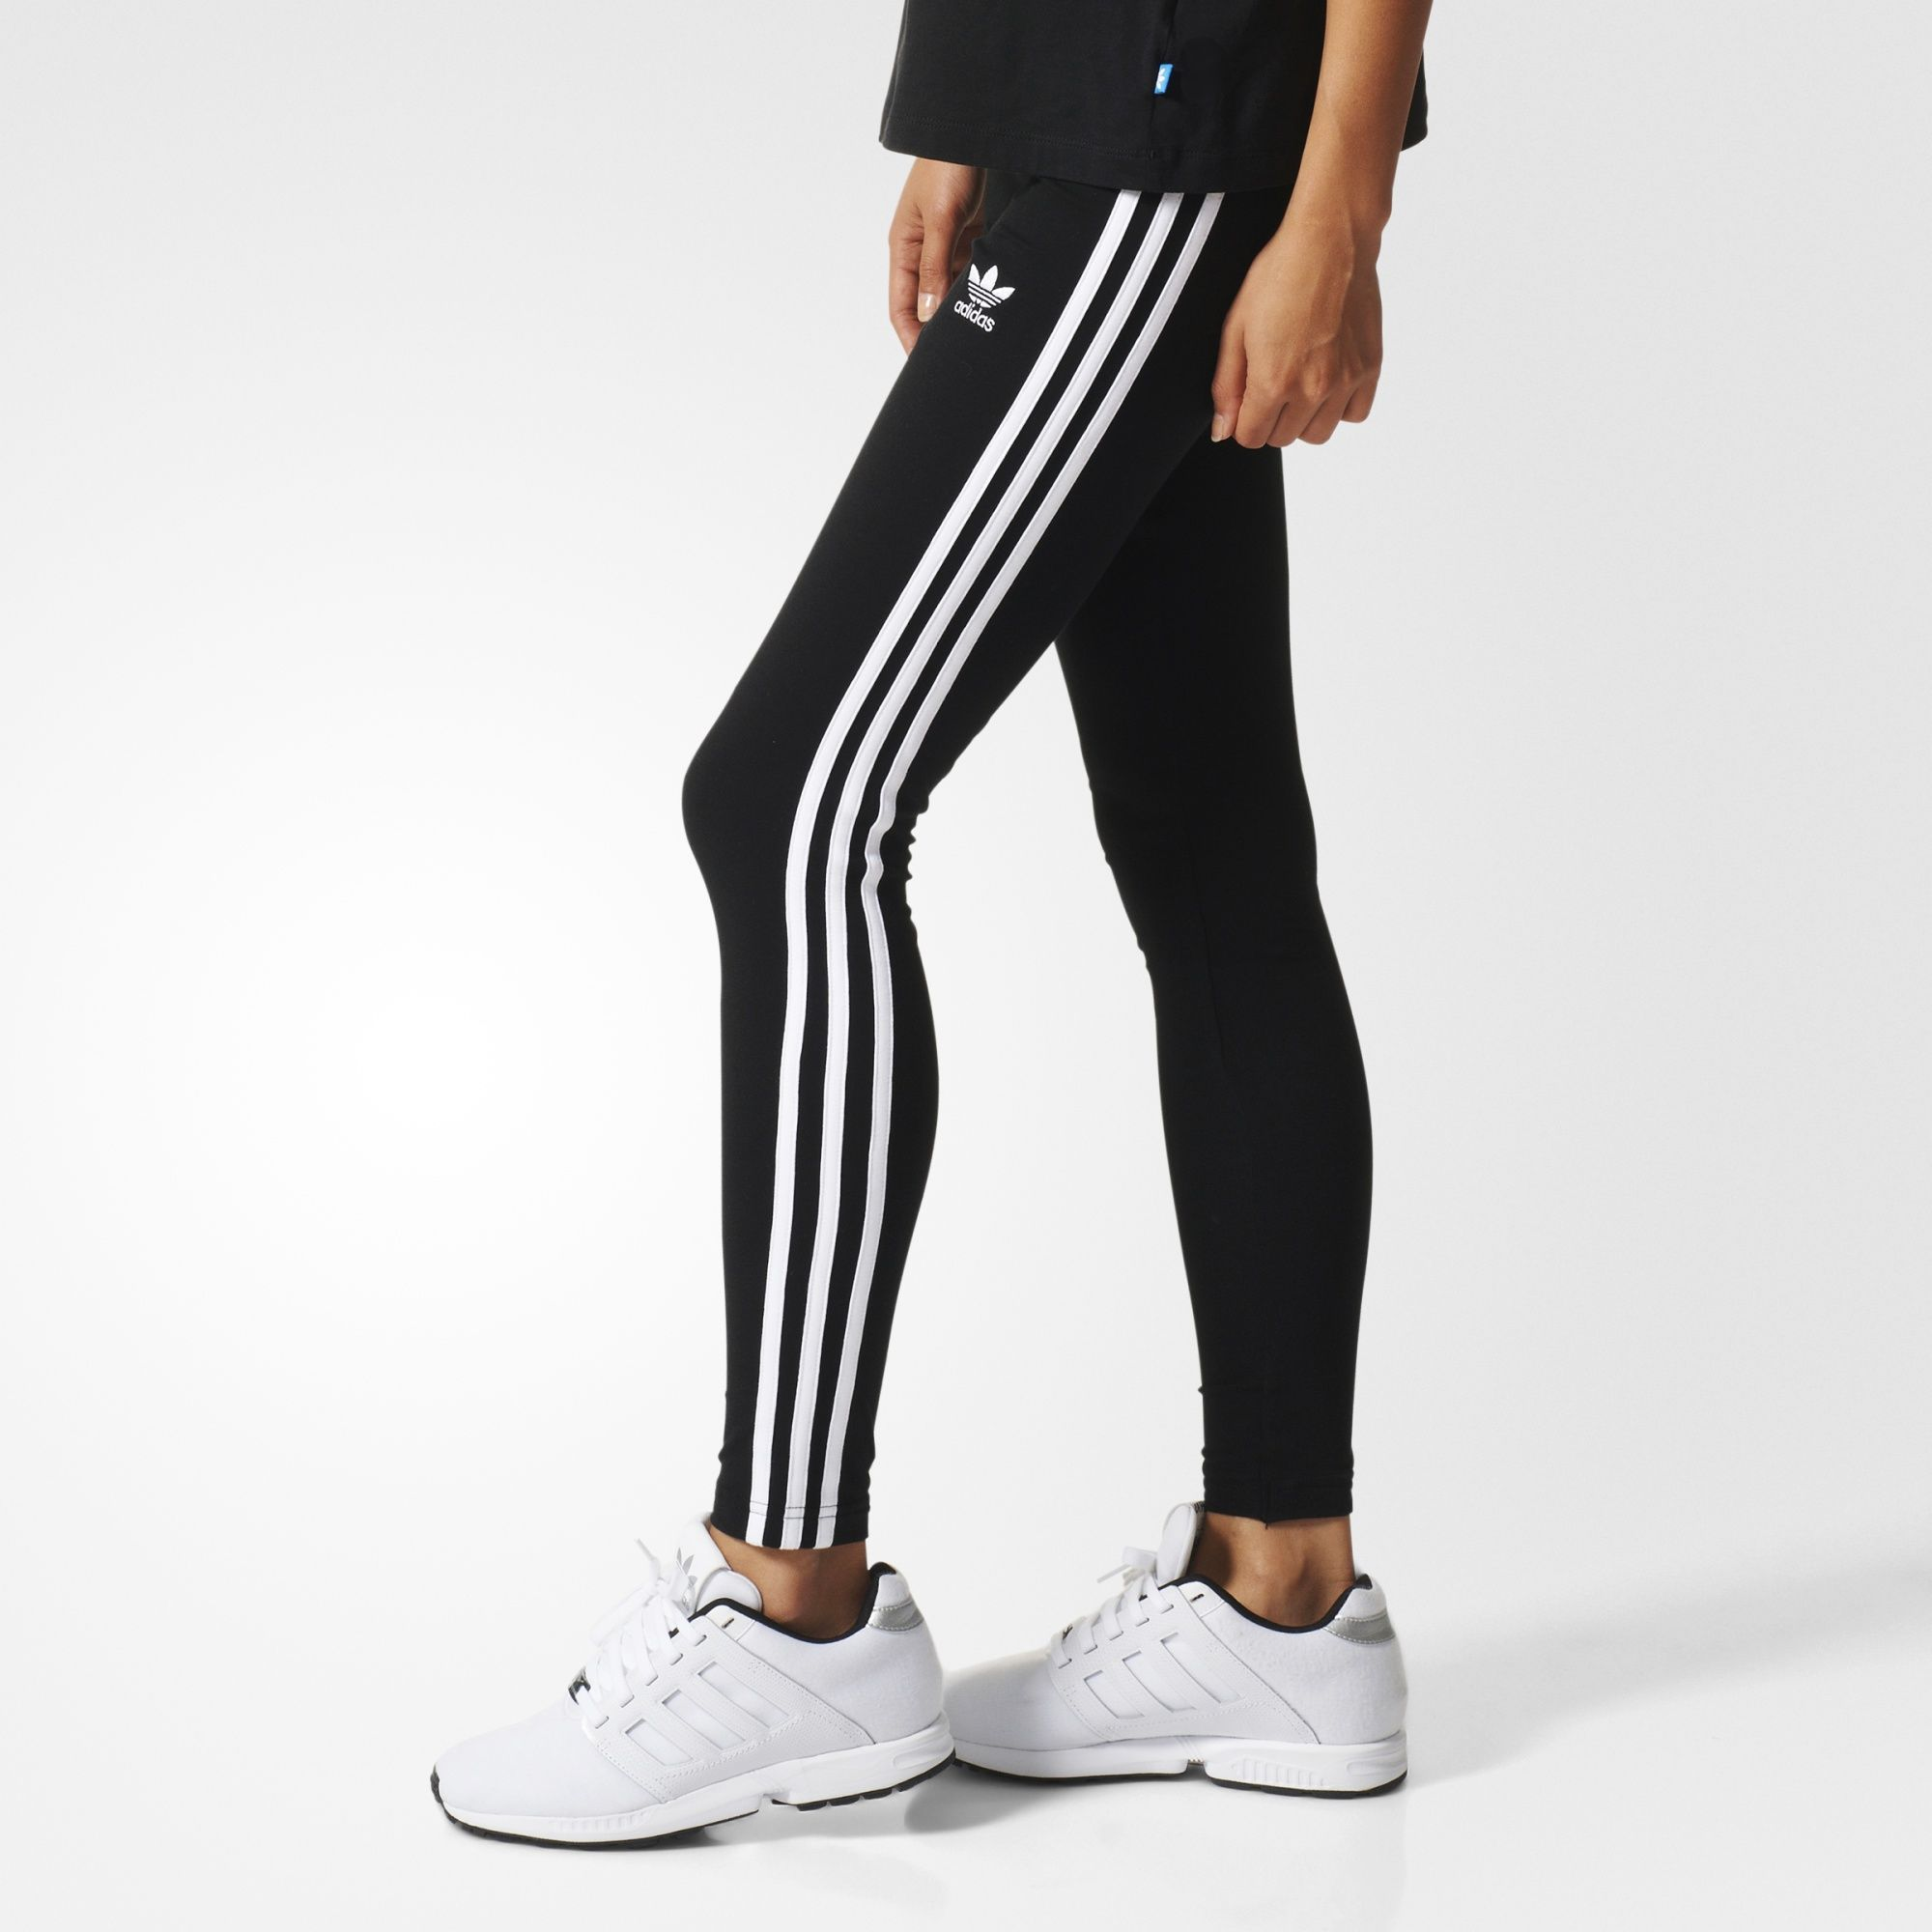 si desenterrar extinción  Access Denied | Striped leggings, Adidas leggings black, Outfits with  leggings